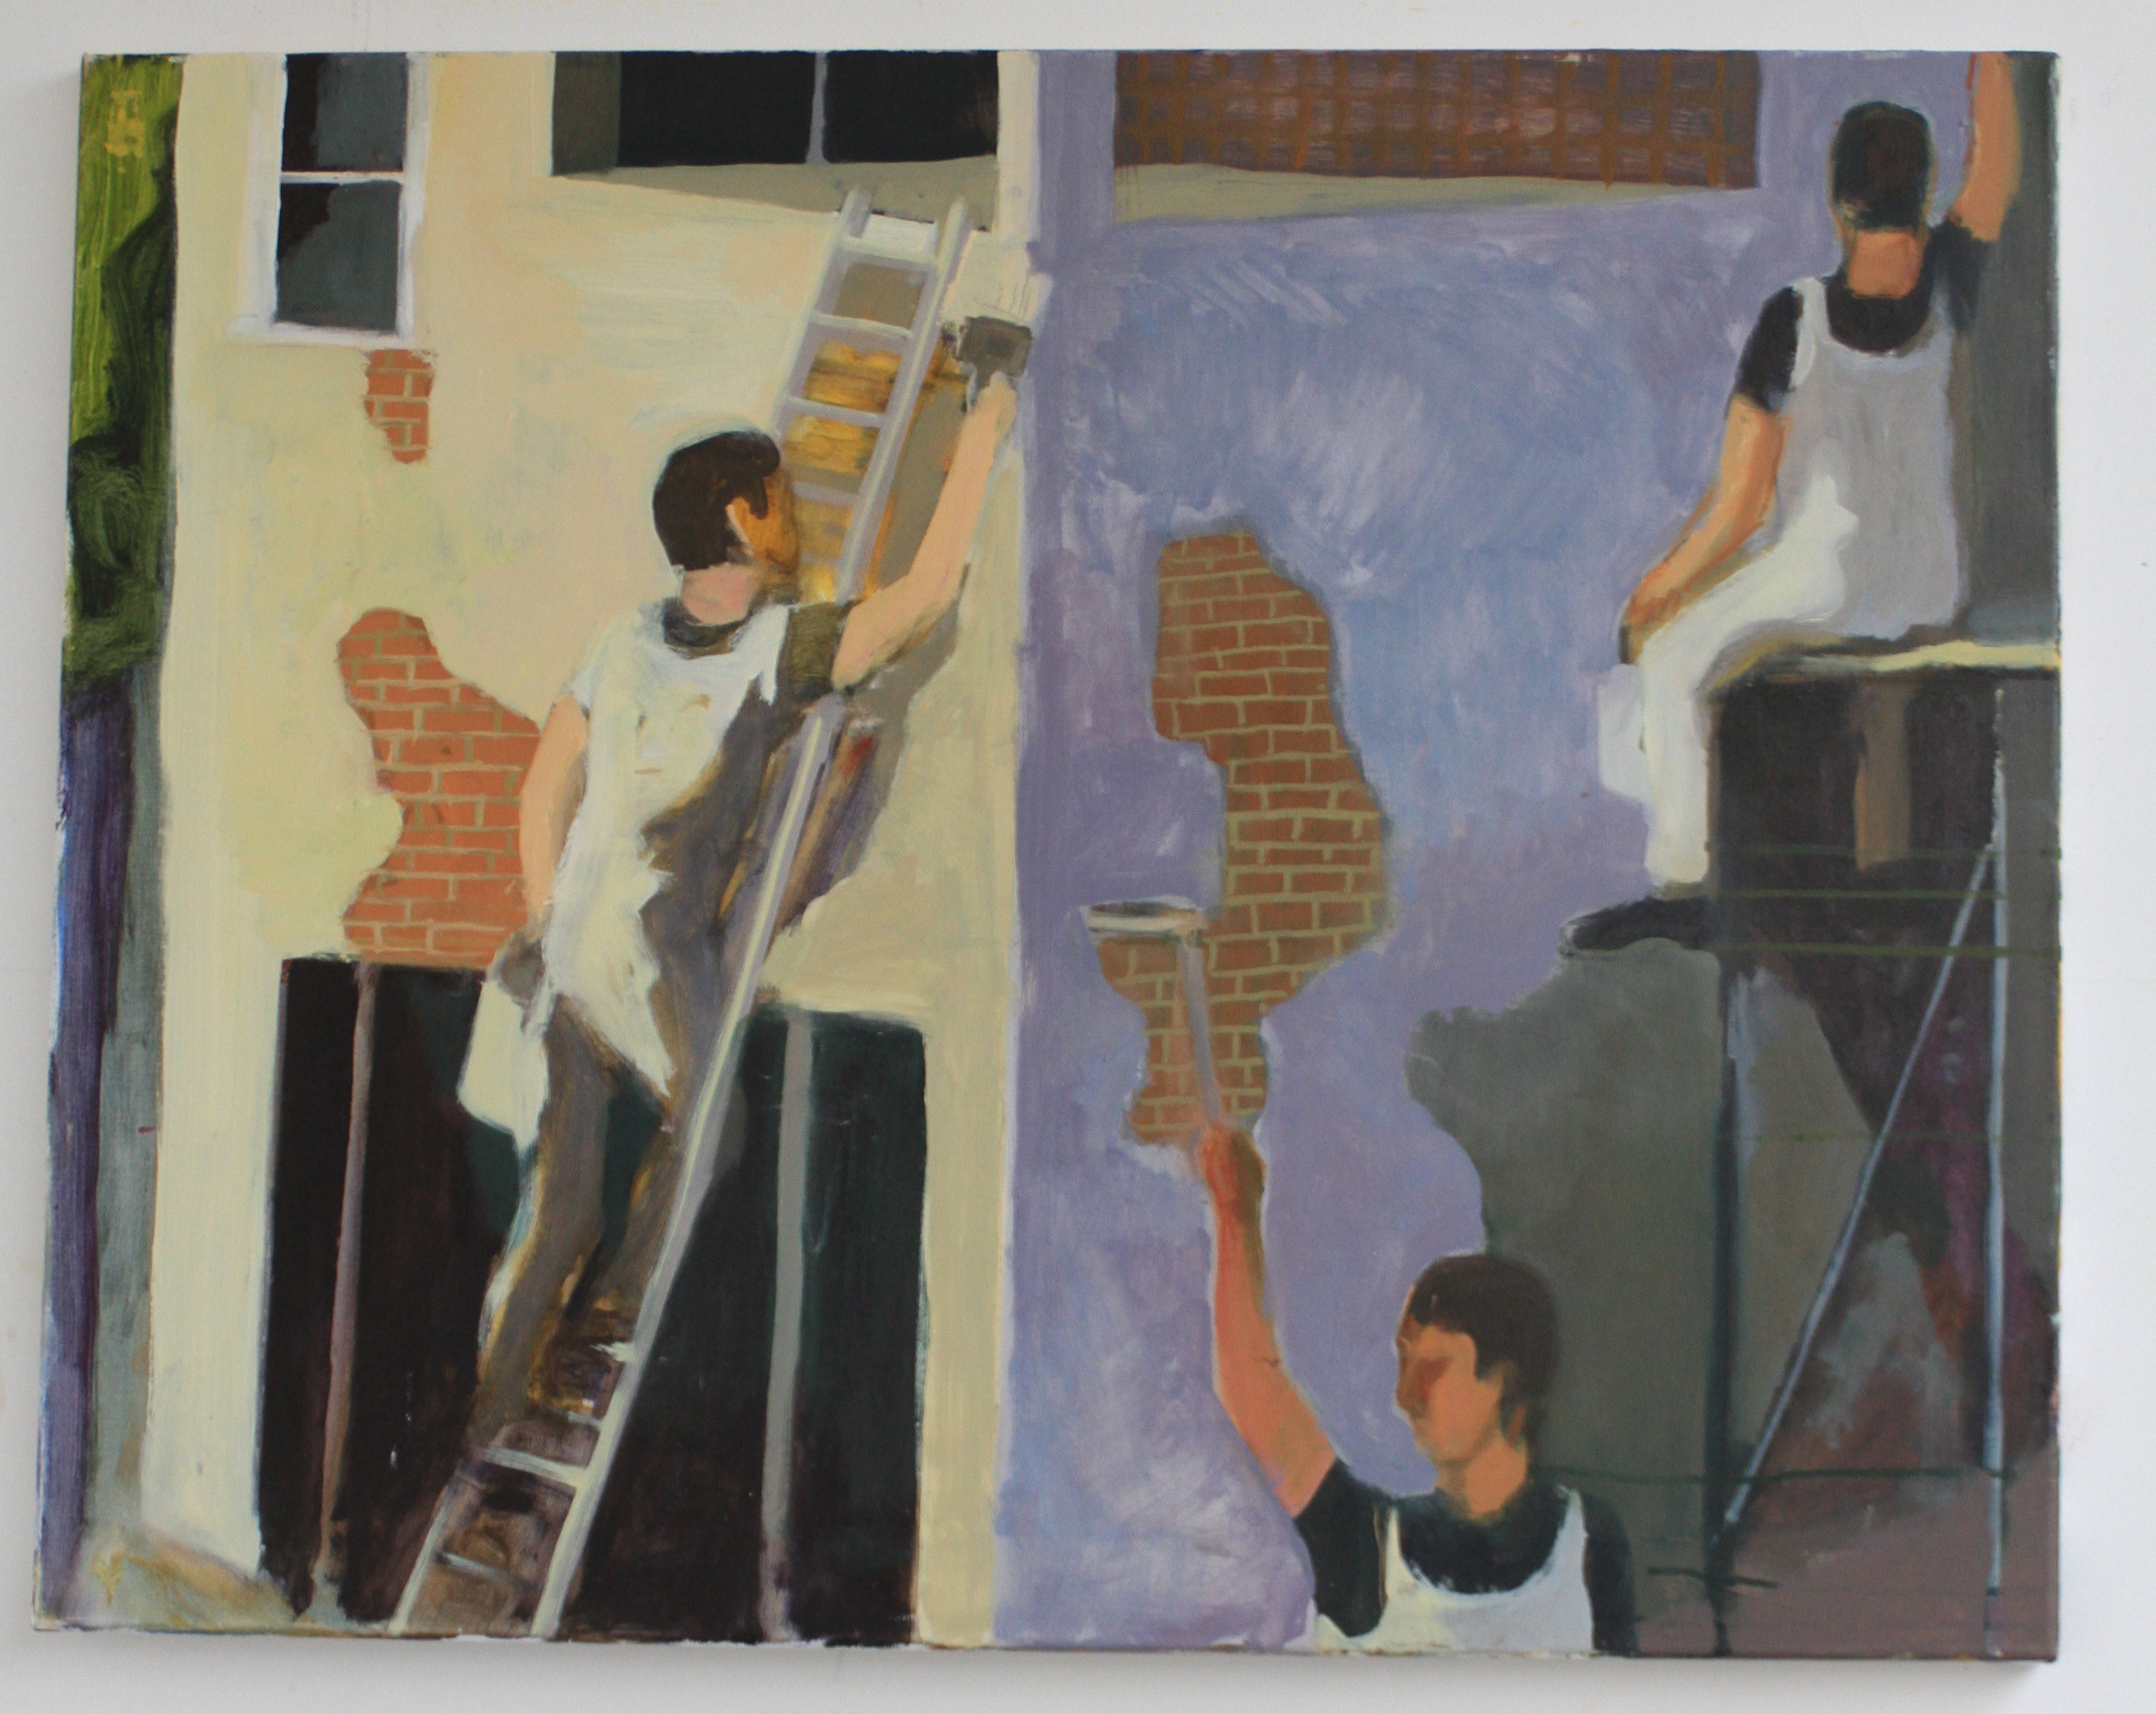 Housepainters oil on canvas 50 x 70cm (approx) 2011